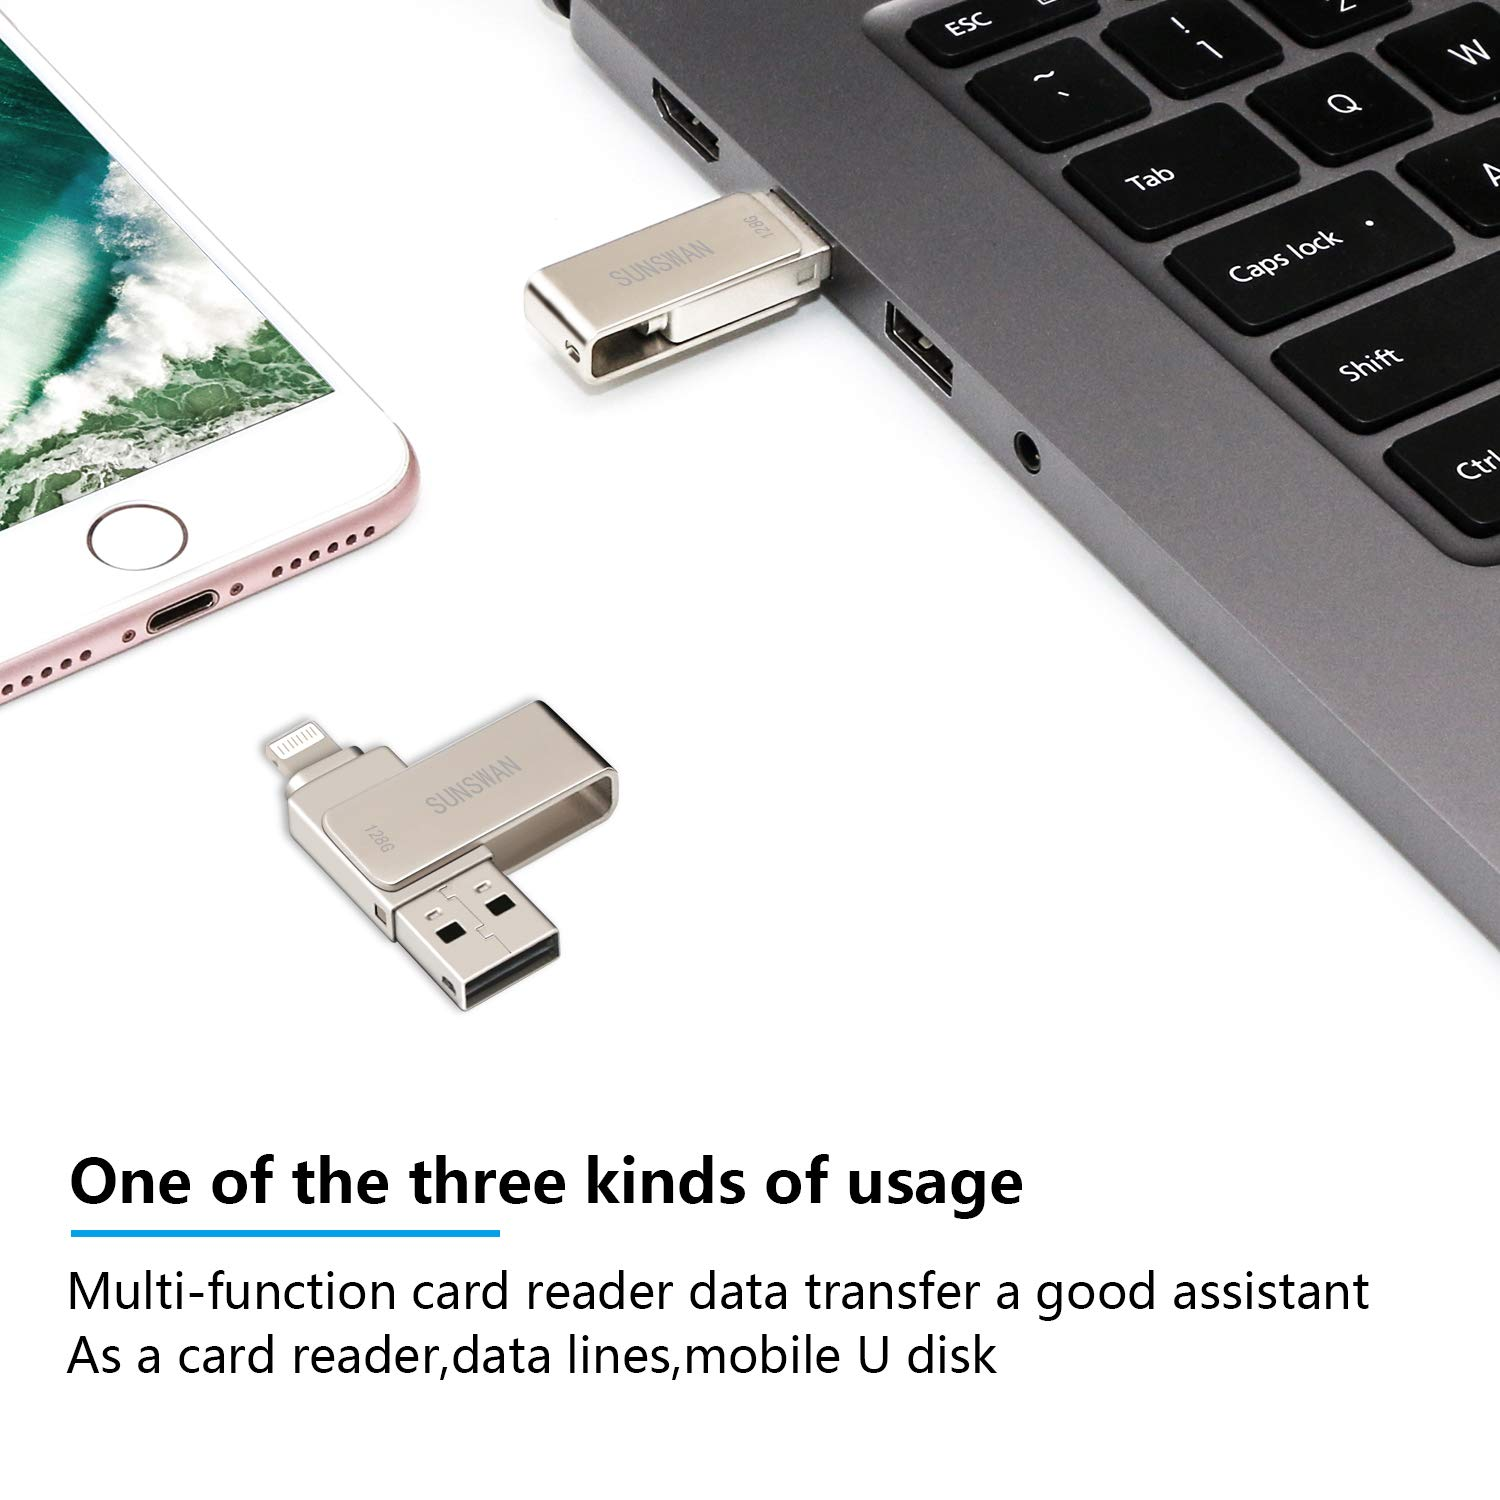 USB Drive 128GB USB Memory Stick iOS Flash Drives for iPhone Photo Stick External Drive Sunswan Compatible iPhone iPad iOS MacBook and Computer (Silver128G-XY) by sunswan (Image #3)